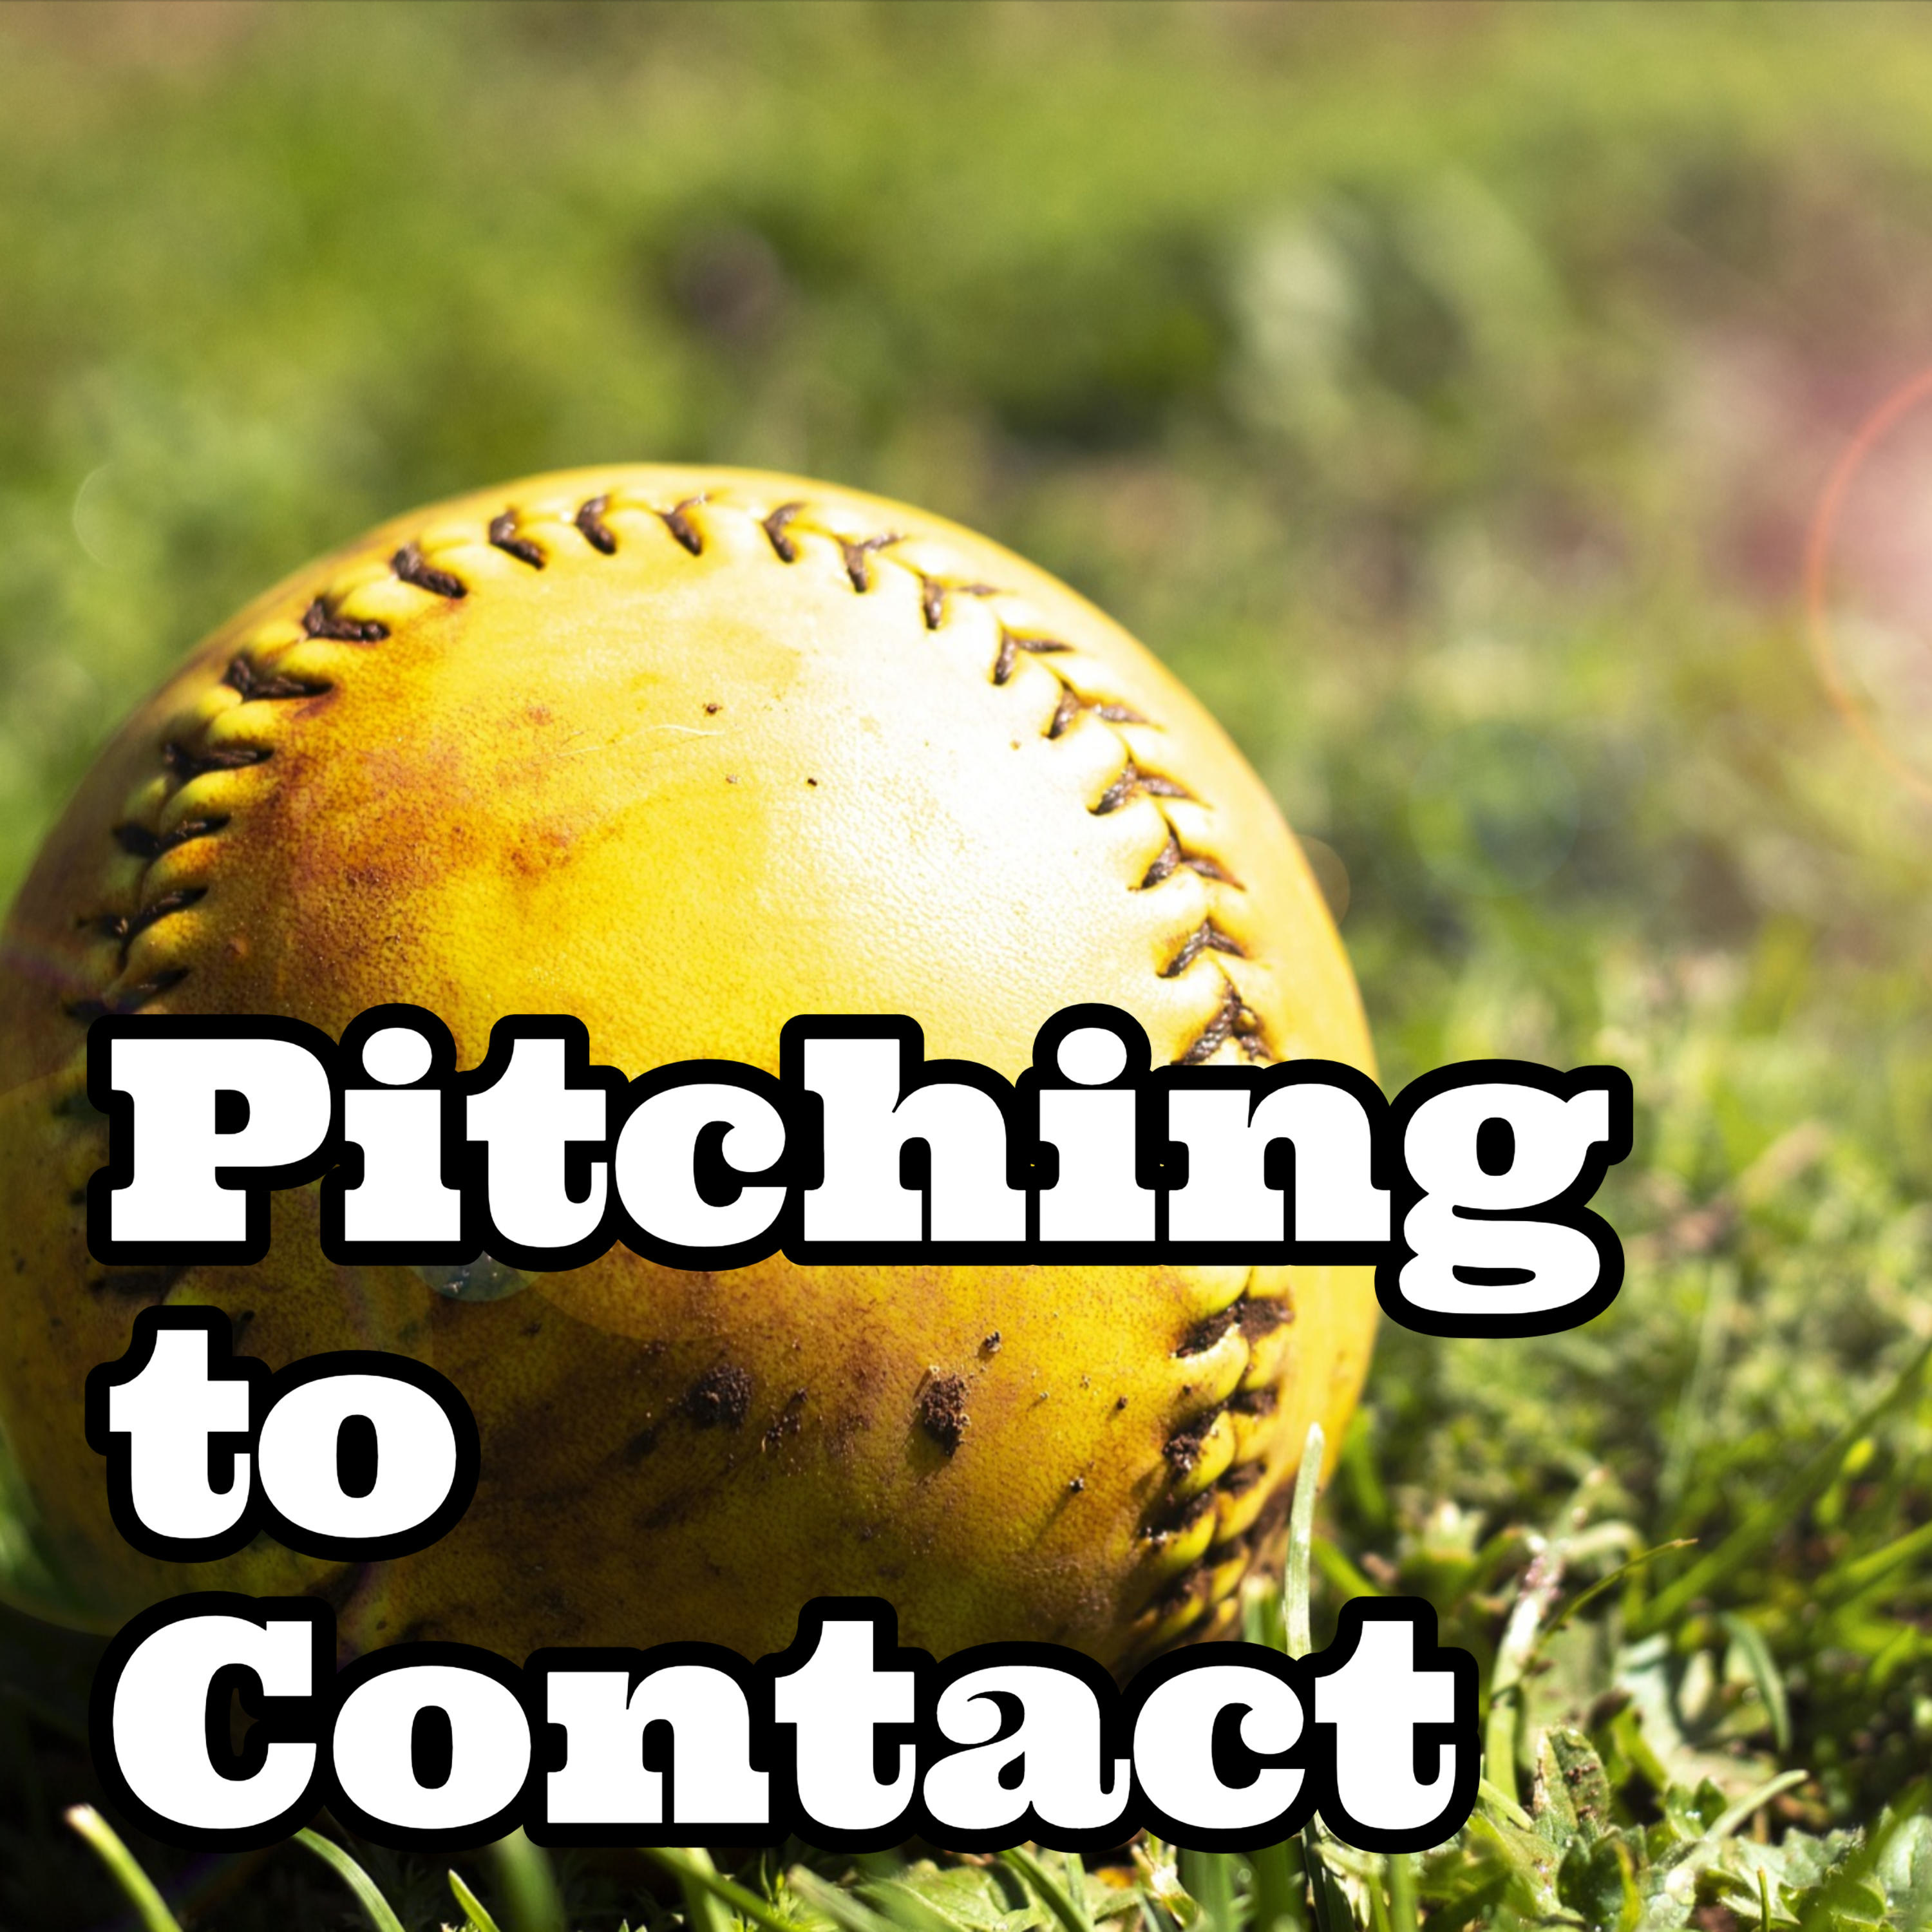 Pitching to Contact